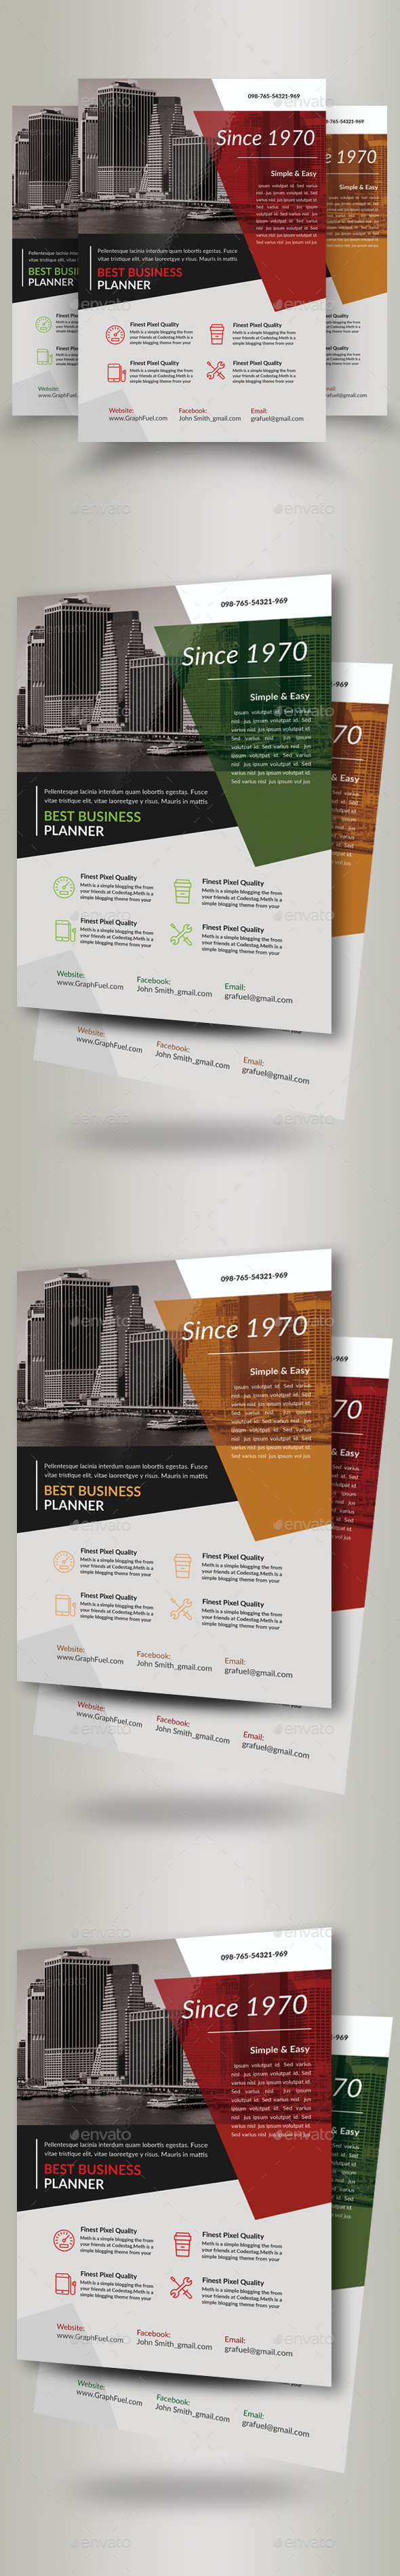 Corporate Business Flyers Template - Corporate Flyers